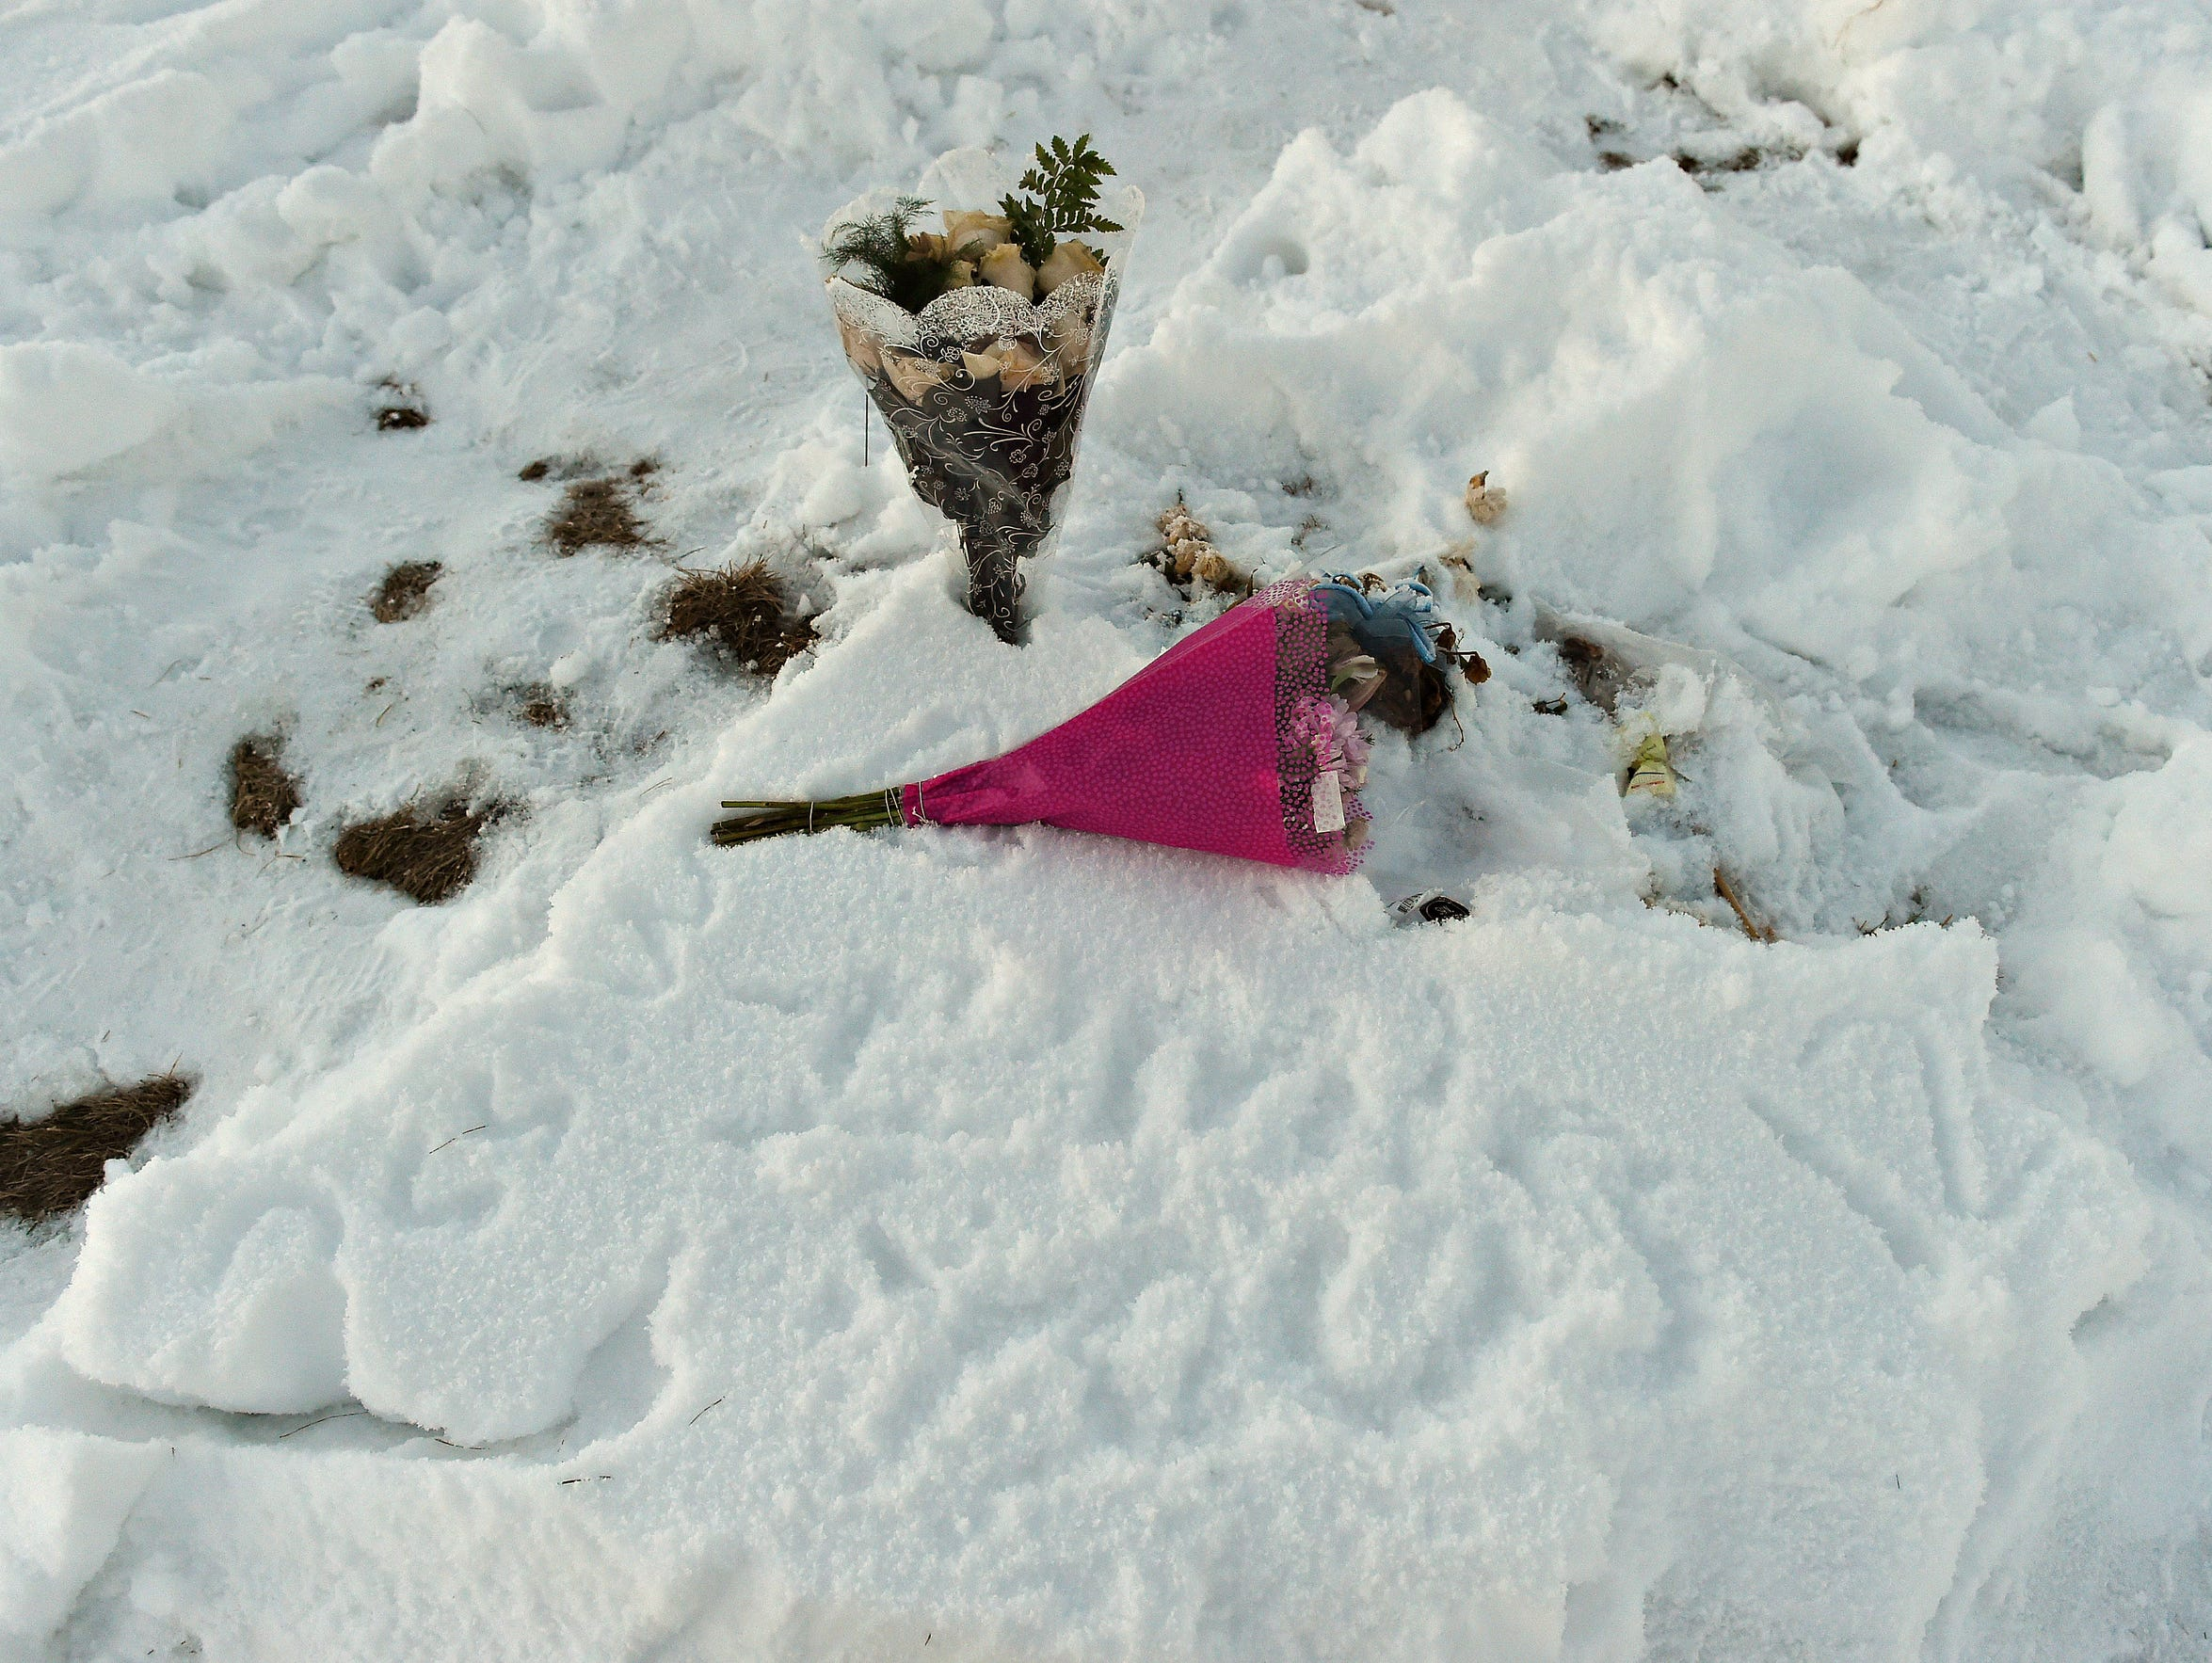 A small yellow flag and flowers mark Ariana Cordova's